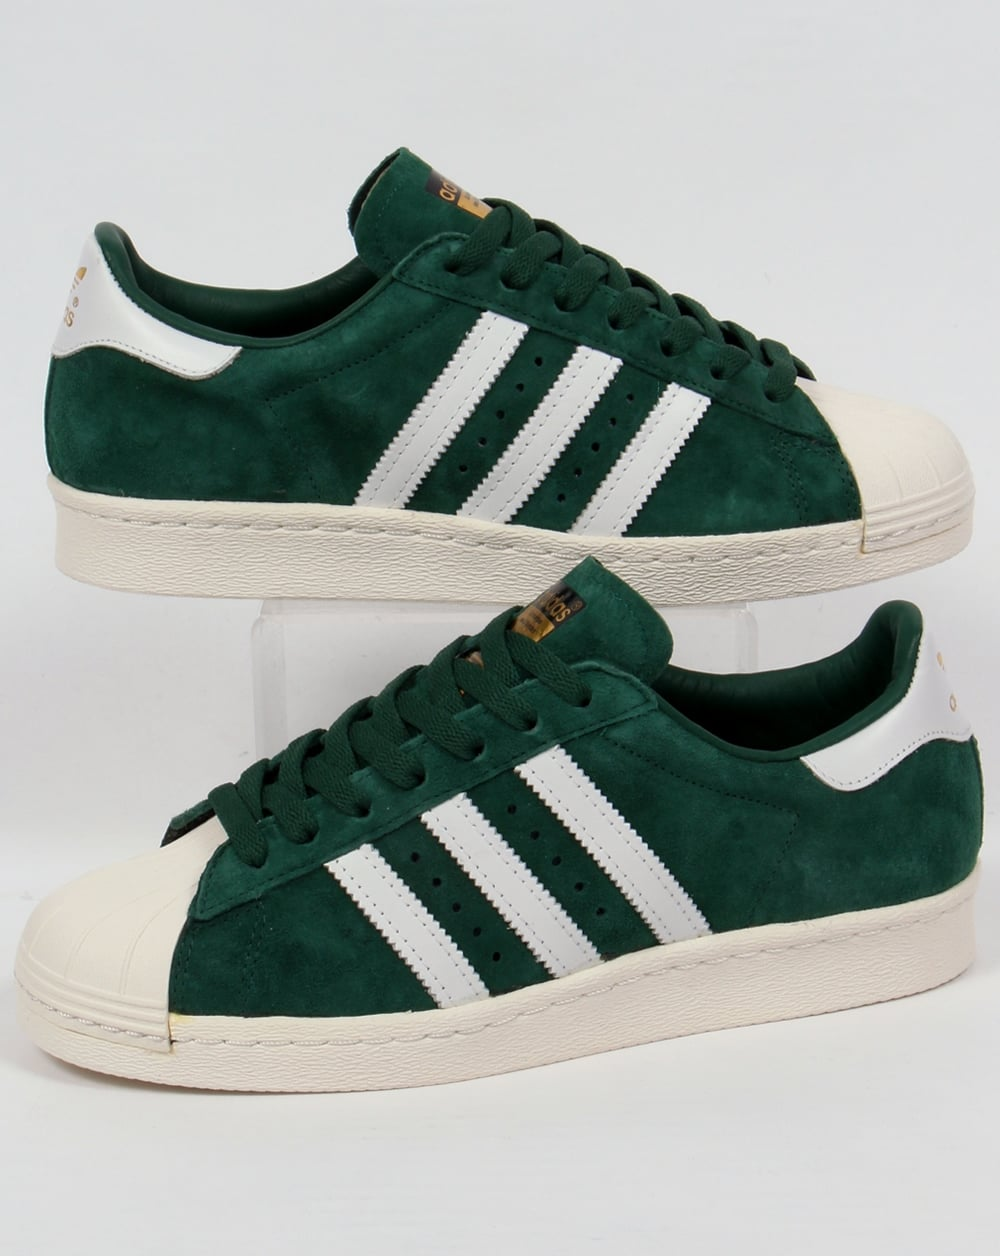 87c1950f19c09d adidas Trainers Adidas Superstar 80s Deluxe Trainers Dark Green White